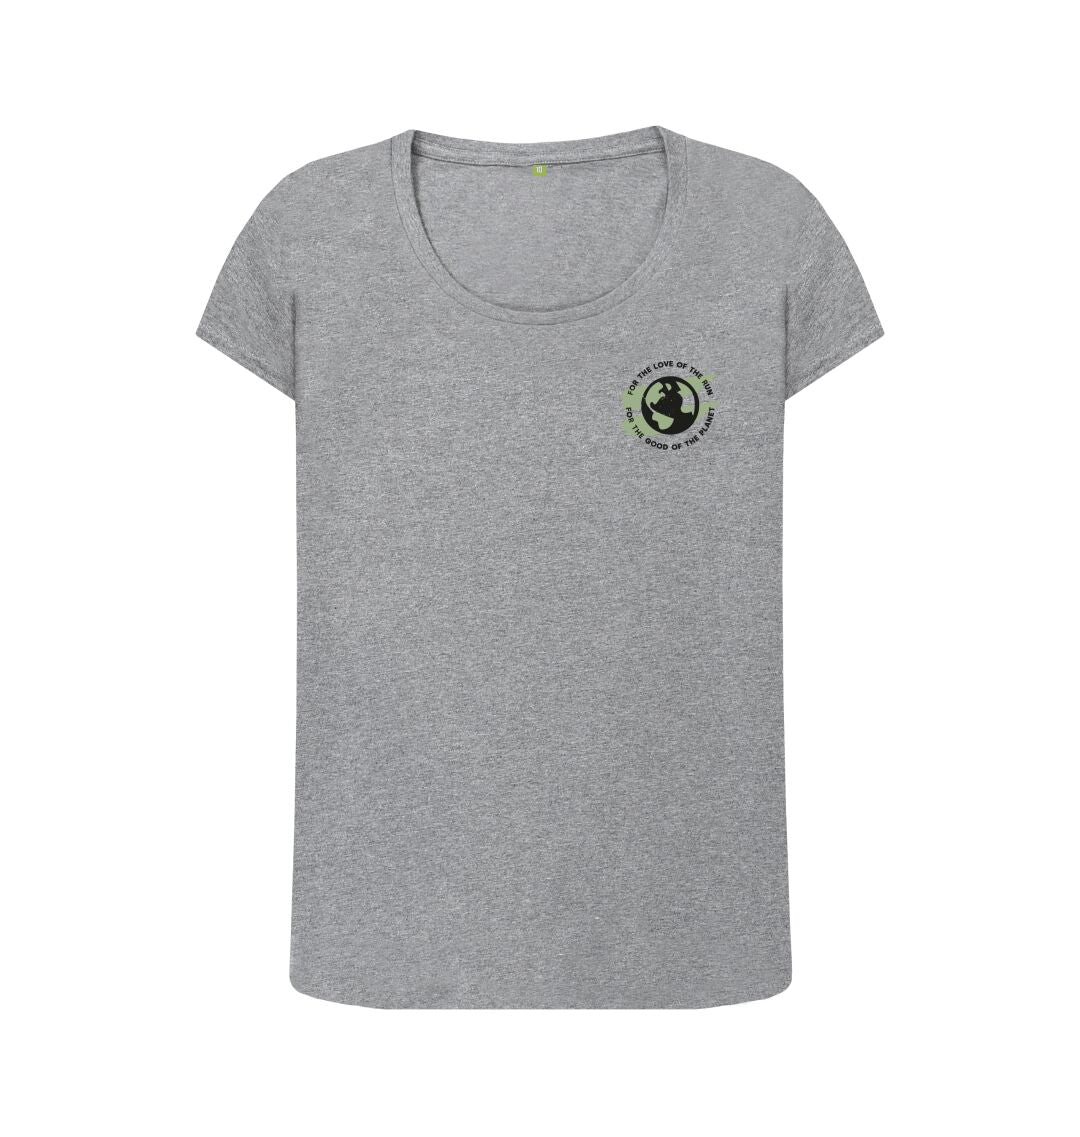 Athletic Grey Earth Scoop Tee in Terrain - Women's